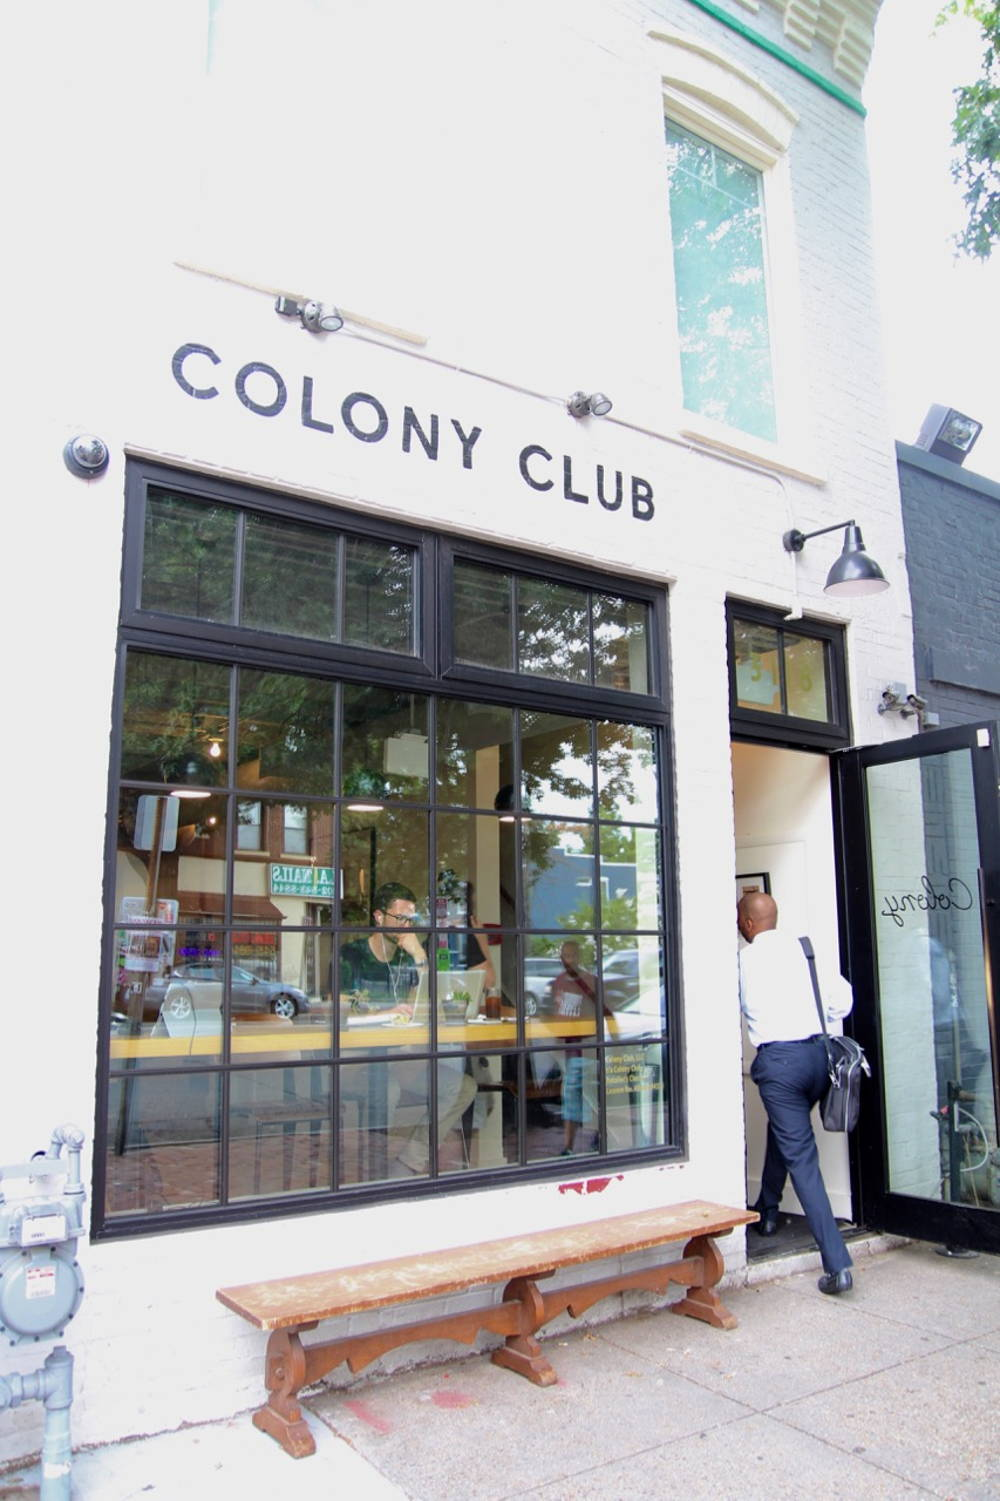 Colony Club